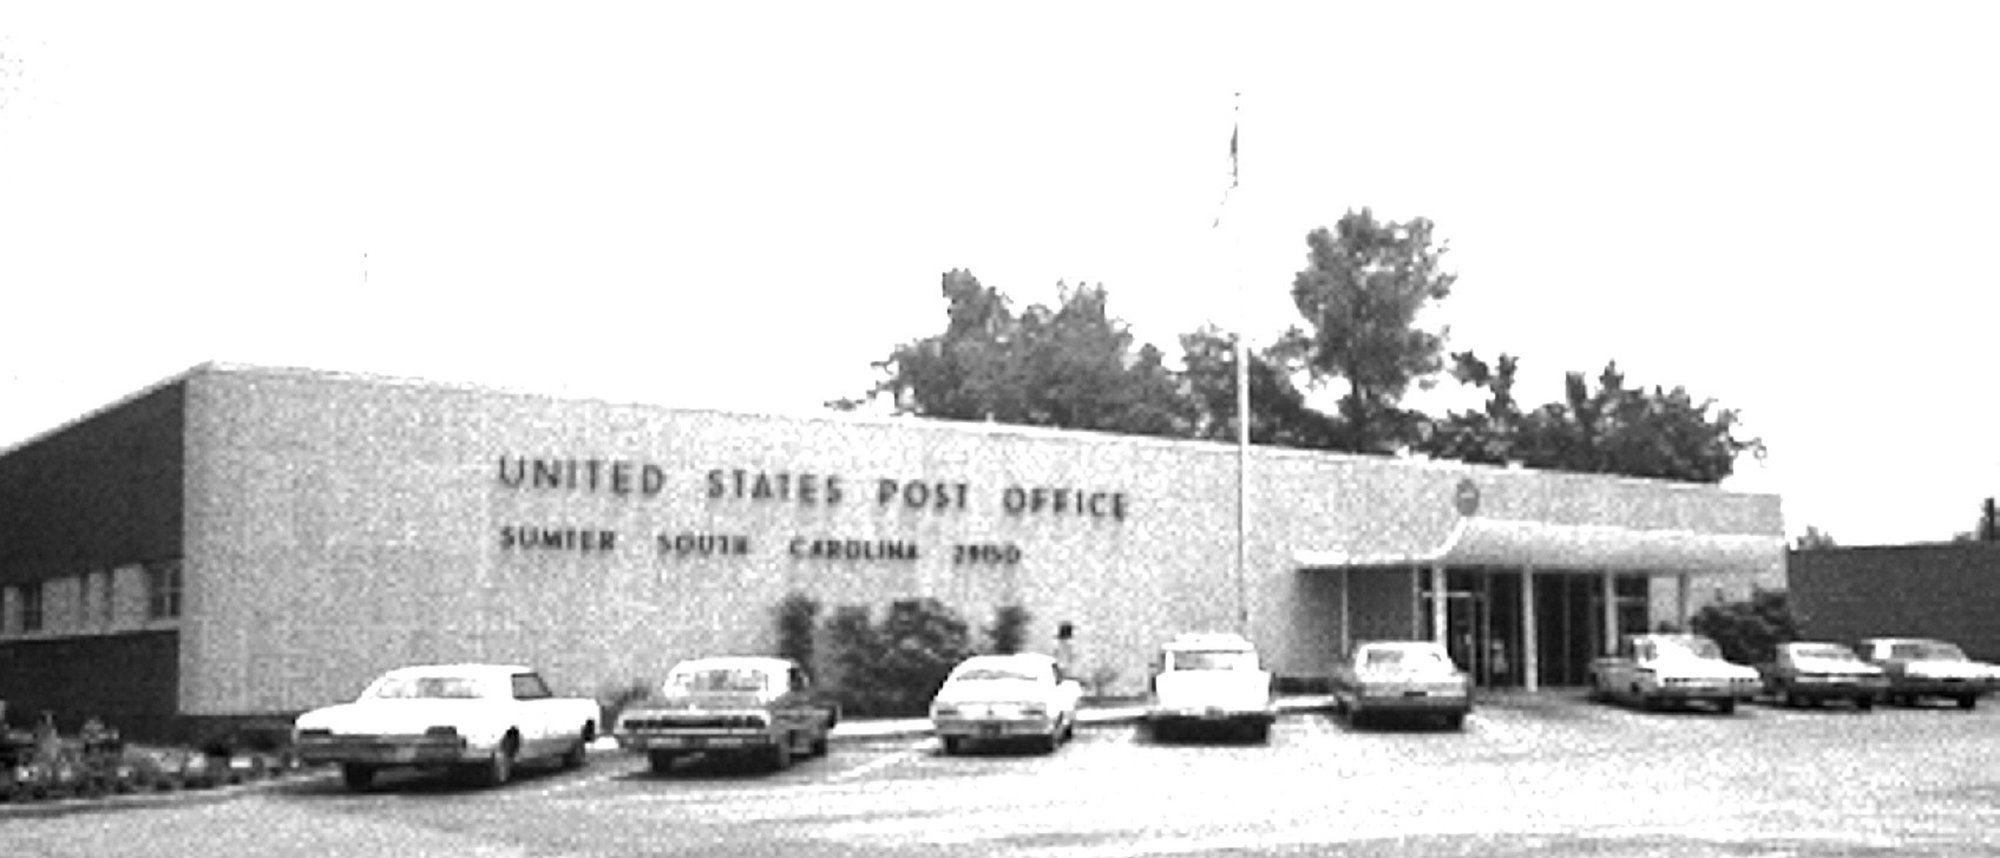 The Sumter post office is seen in its final location, on North Main Street across from First Presbyterian Church downtown, in 1970. It was dedicated in May 1965 in honor of Rep. John J. Riley and Sen. Olin D. Johnston.